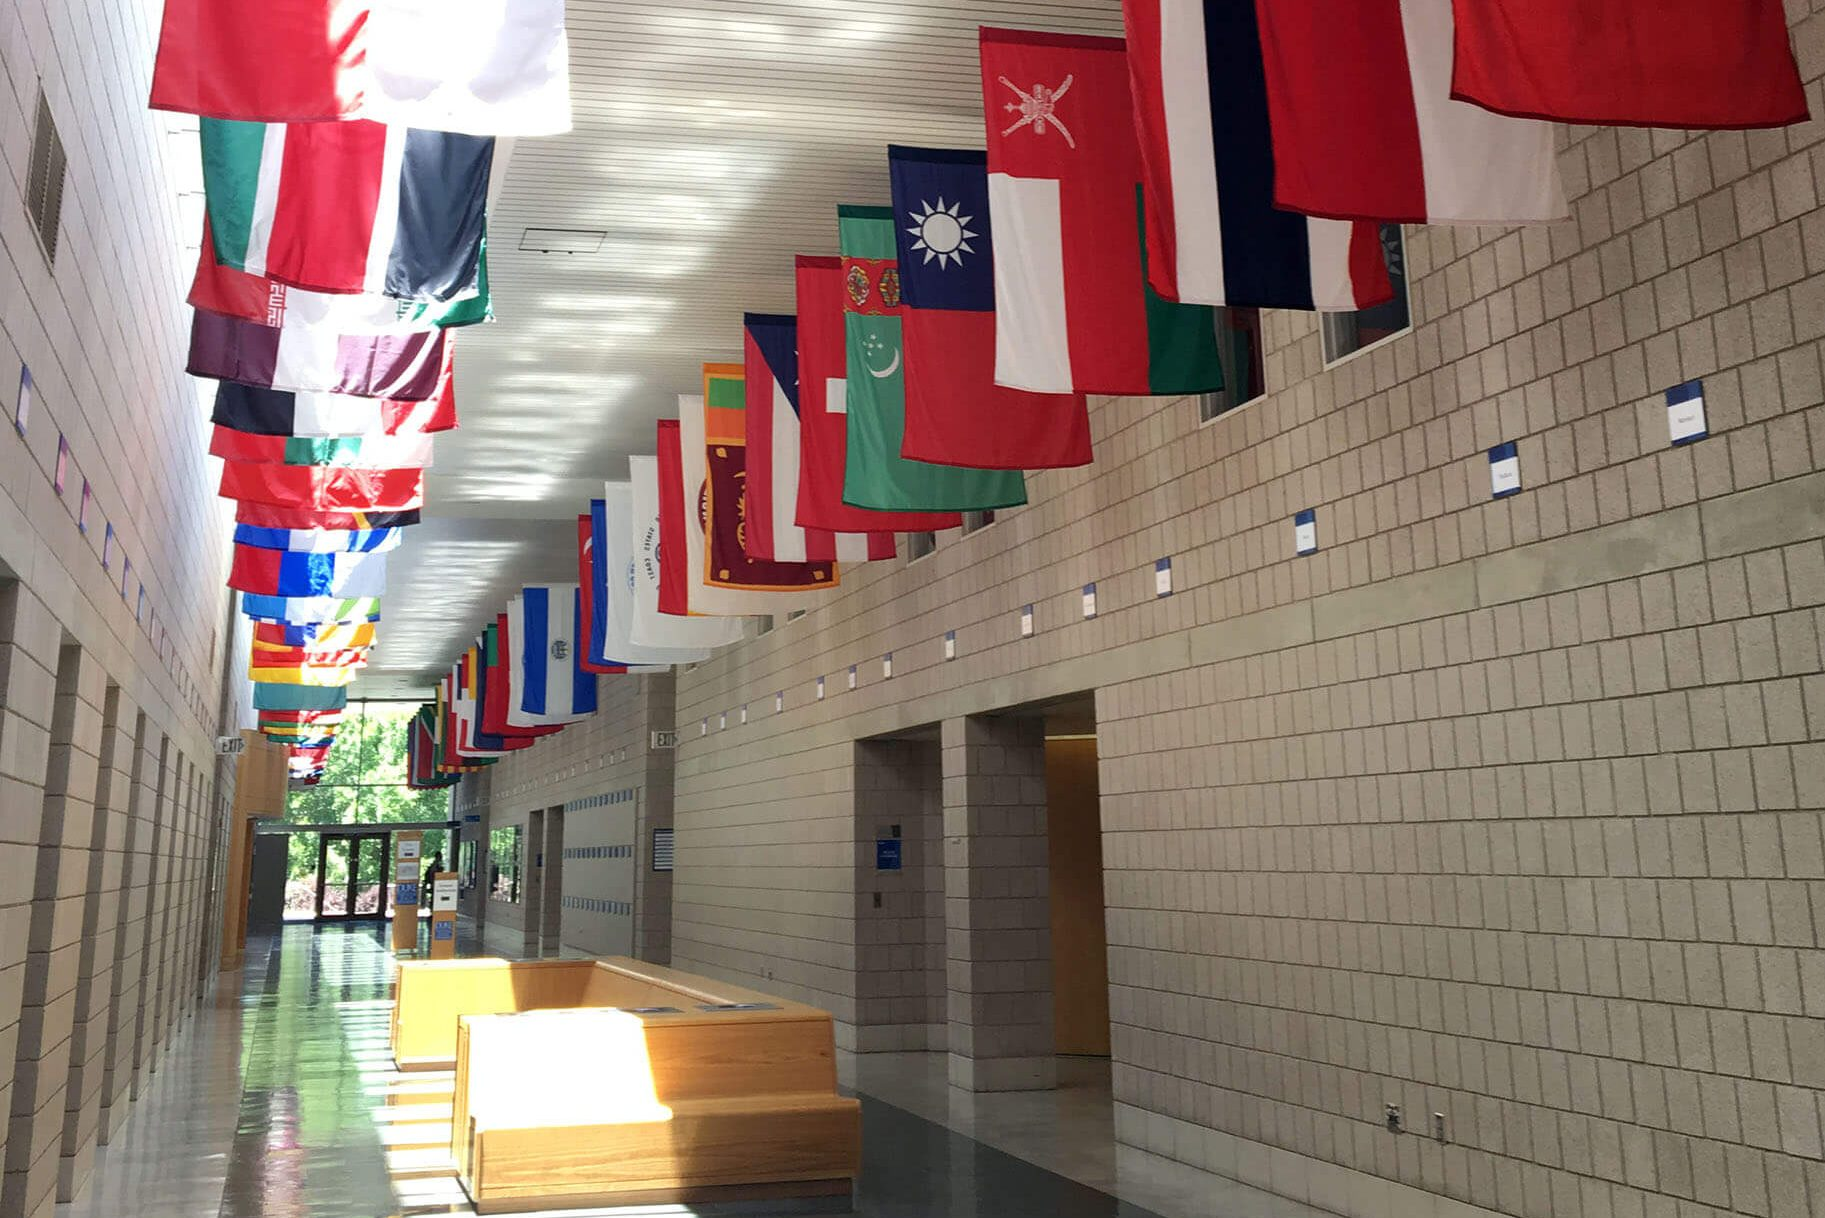 the flags in the halls of Fuqua symbolize the student diversity, one of the reasons why the MMS program was right for me